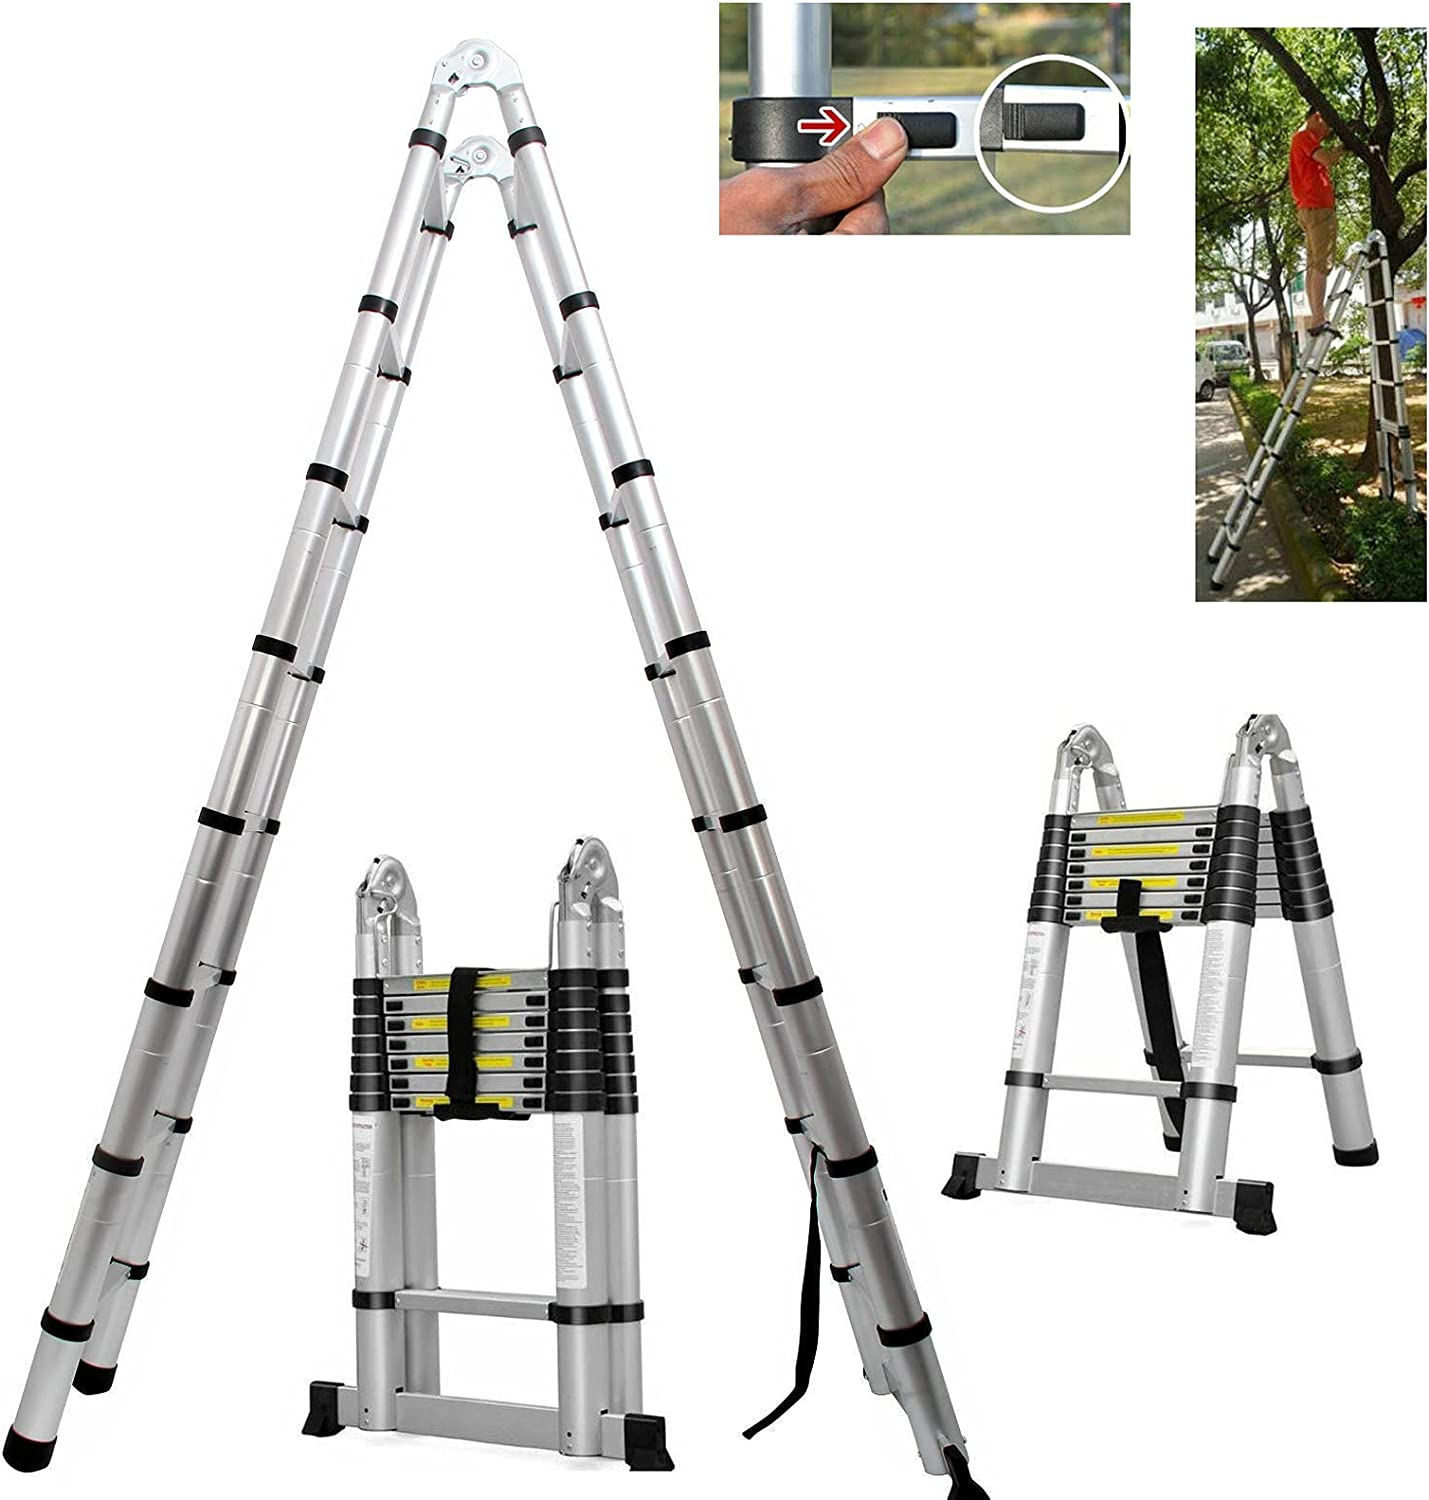 A-Type Choice Adjustable Free shipping anywhere in the nation Height Ladder Telescoping Extension Aluminum L